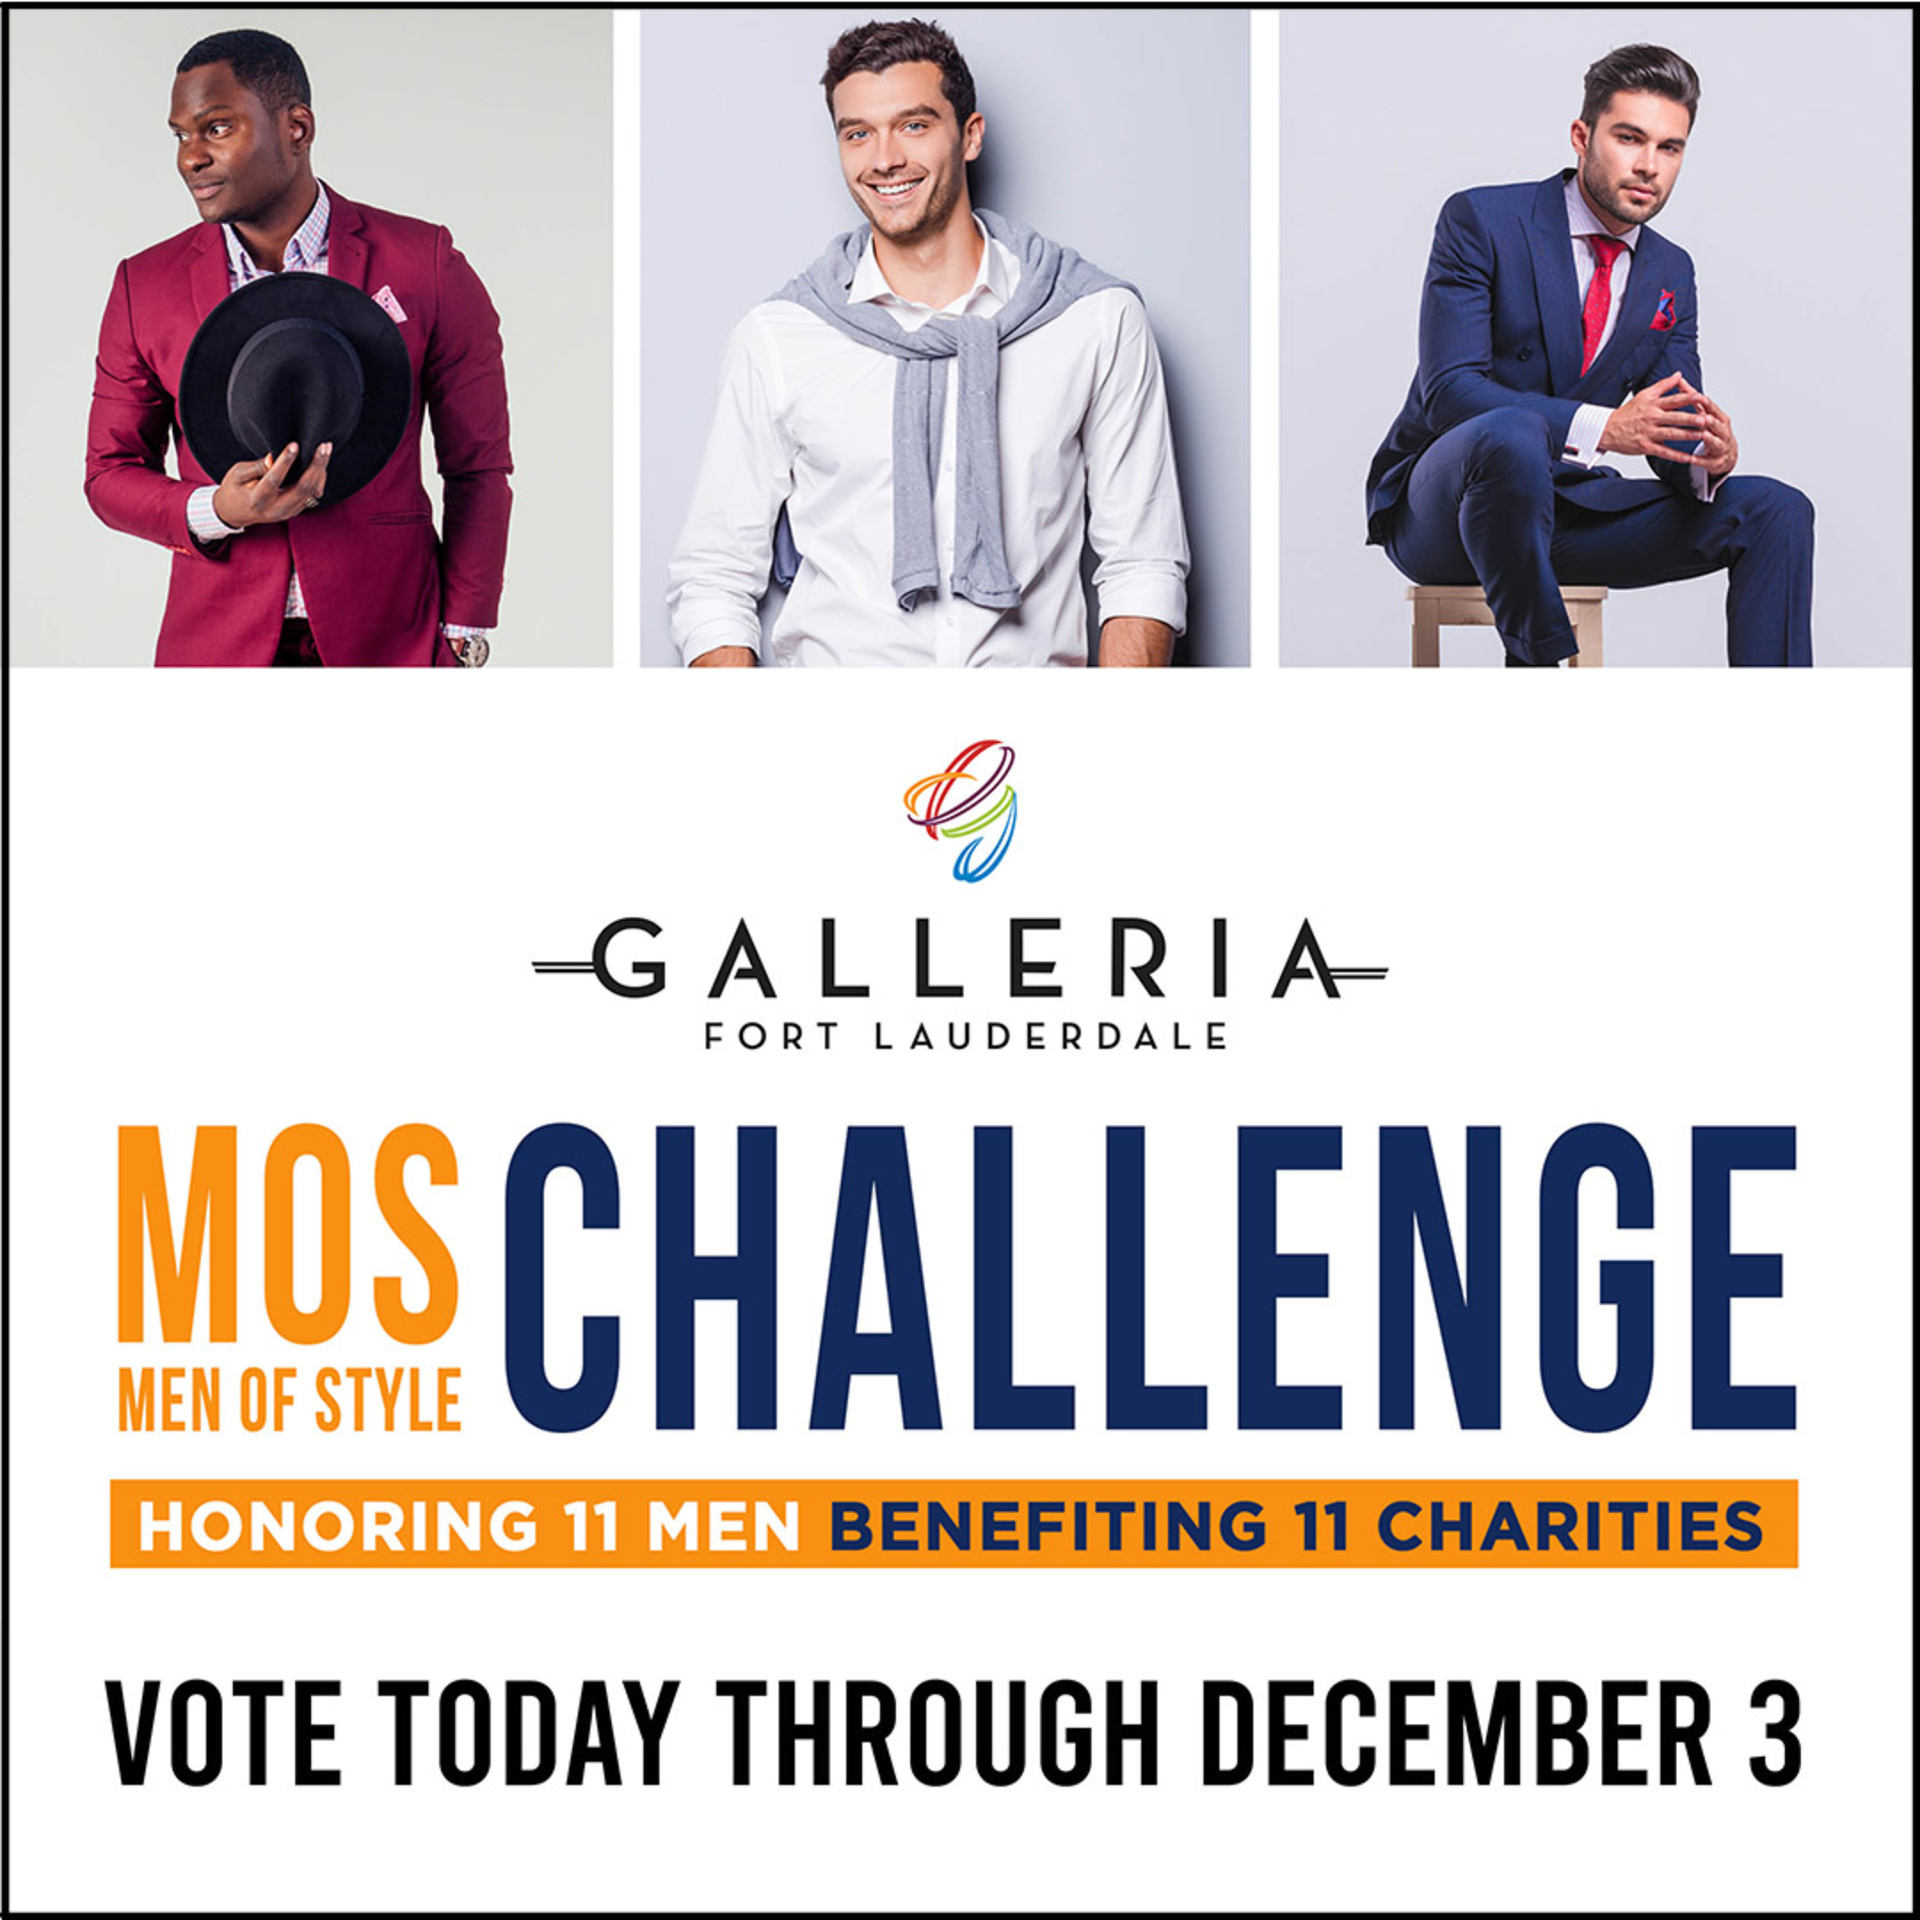 THE GALLERIA'S 14TH MEN OF STYLE CHALLENGE; ANNUAL EVENT GOES VIRTUAL FOR 2020